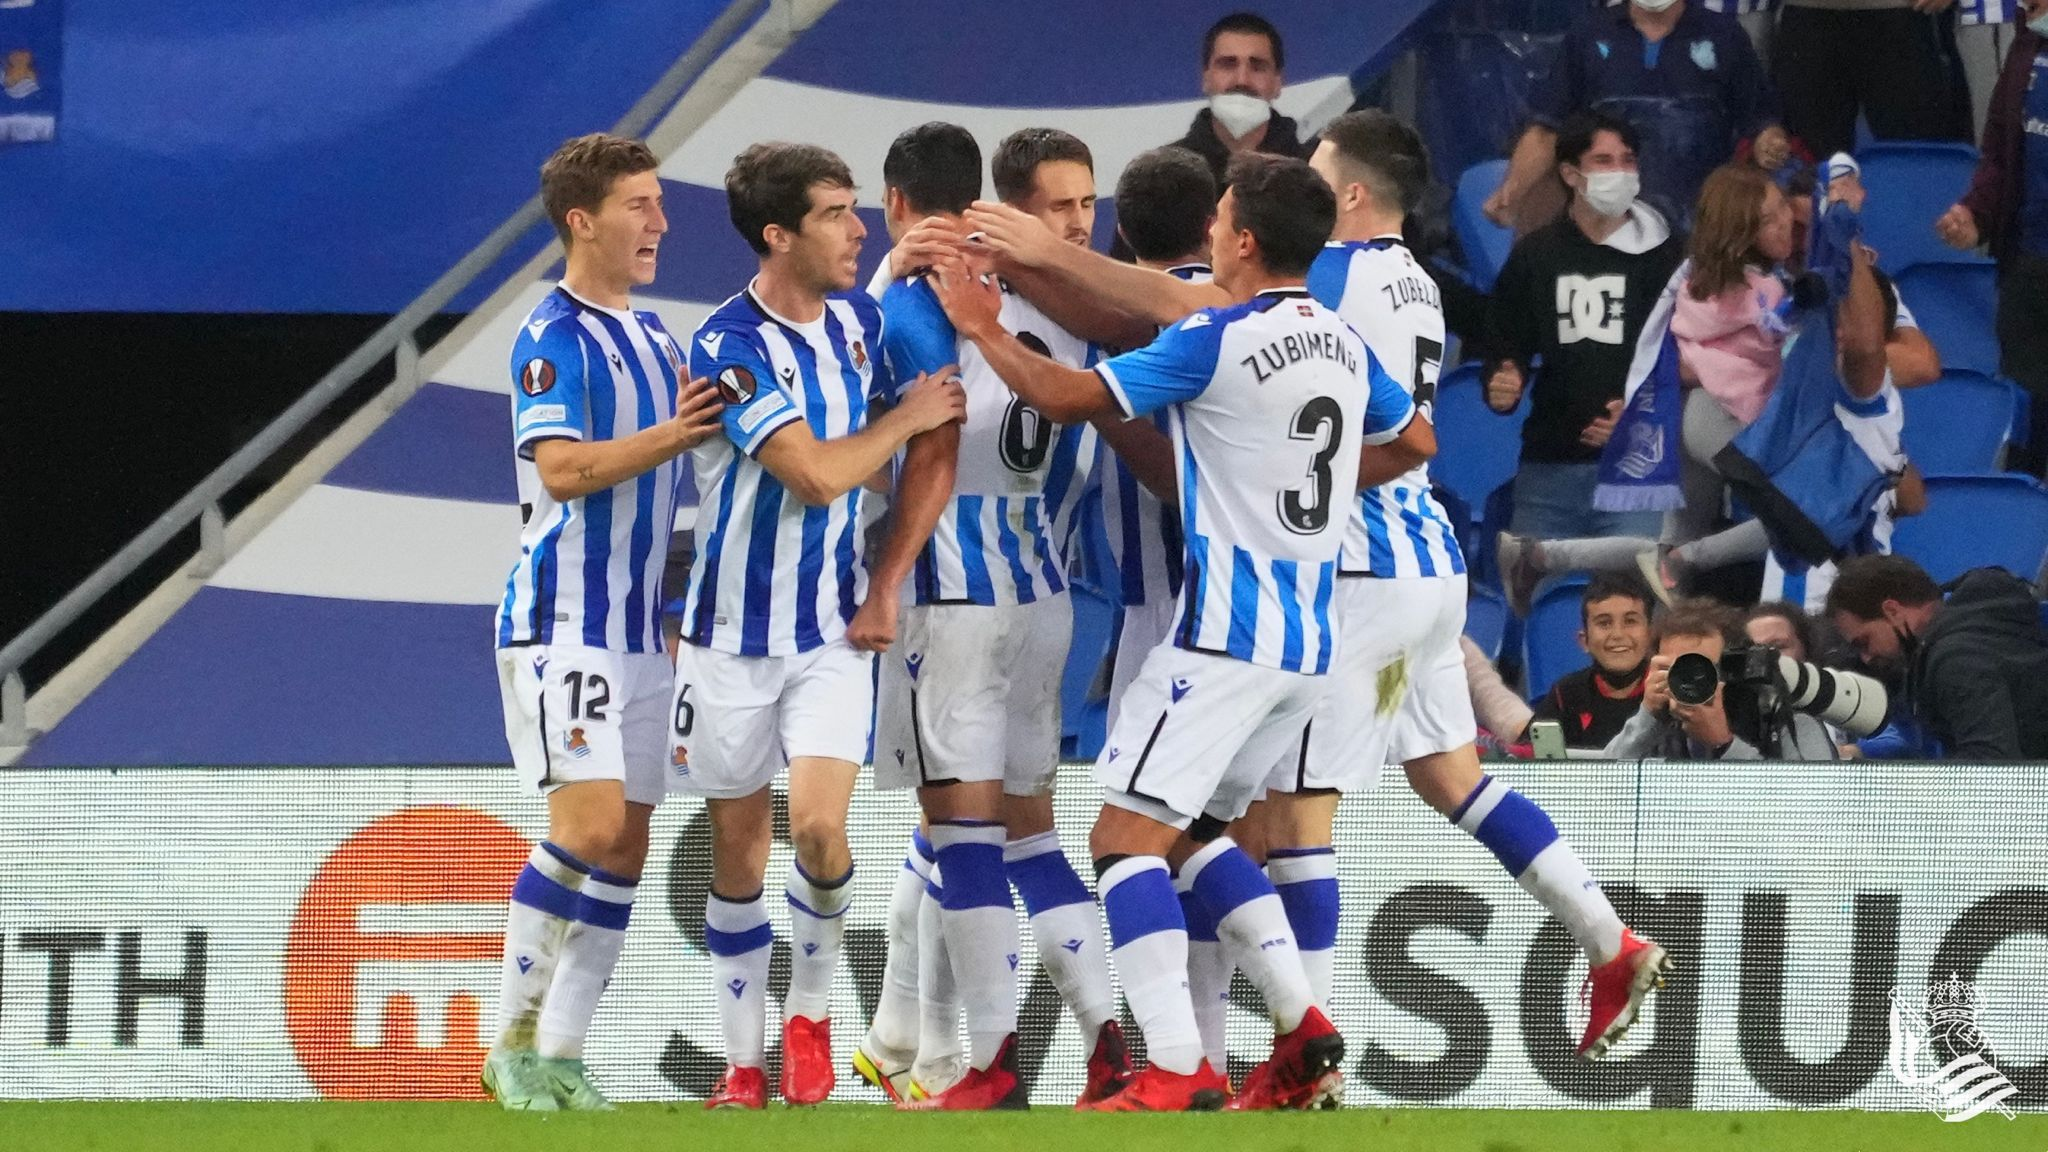 Real Sociedad draw 1-1 with Monaco at the Reale Arena in the Europa League